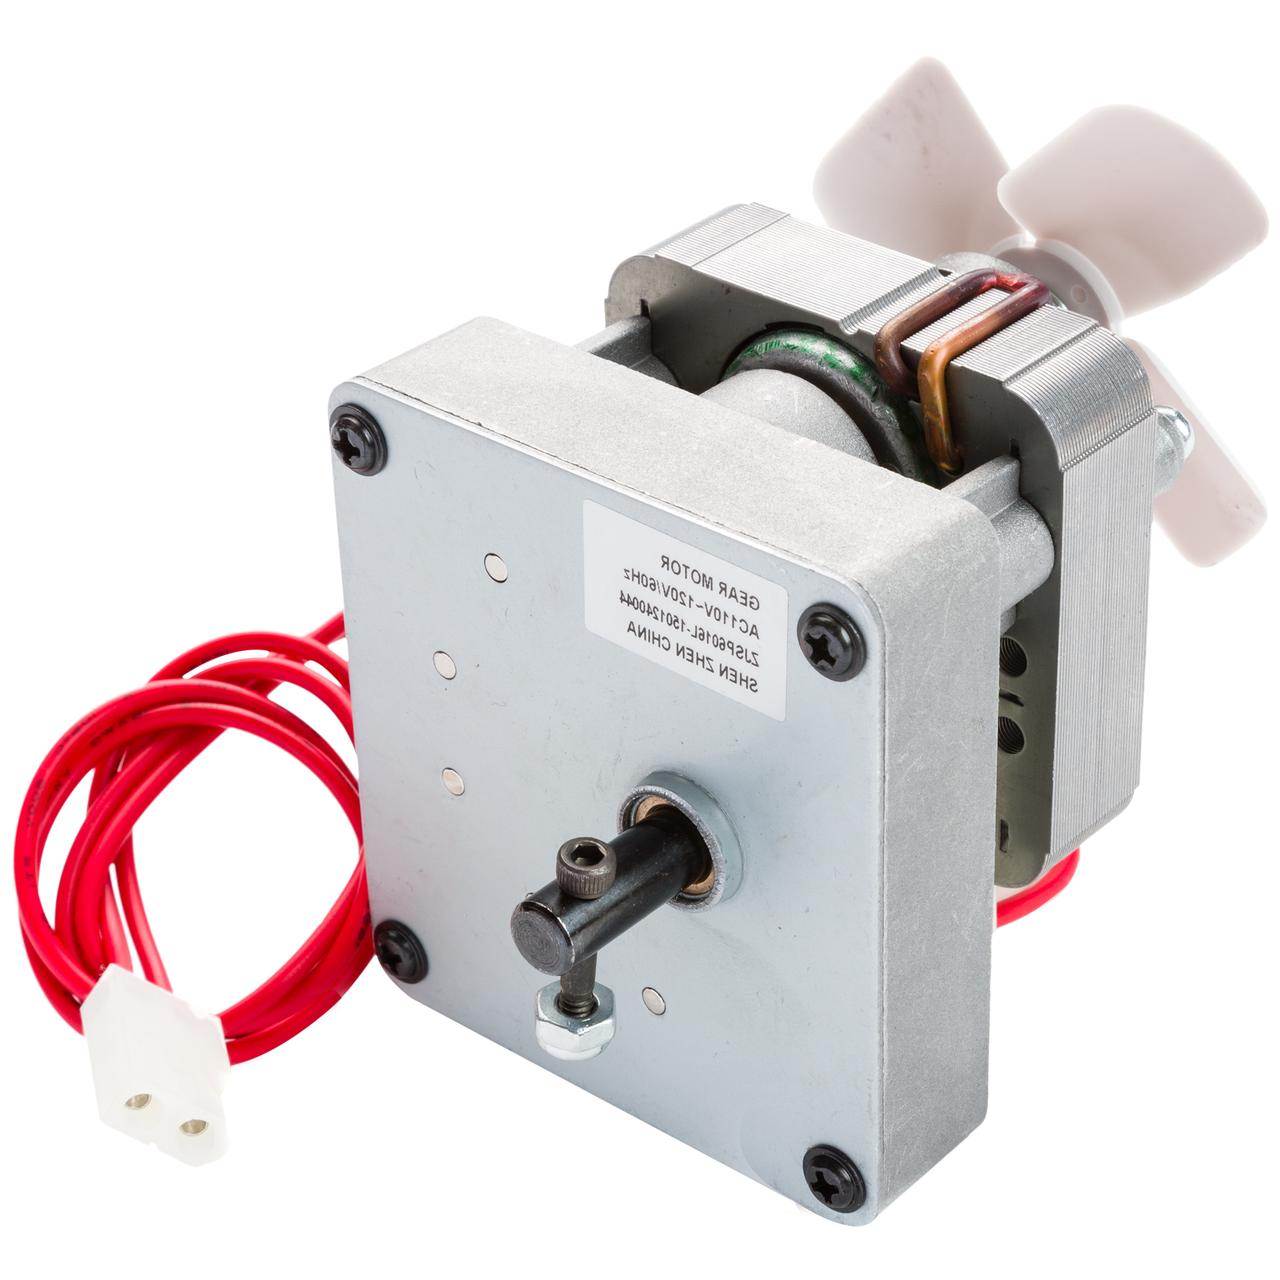 Replacement Auger Motor For Traeger Electric Wood Pellet